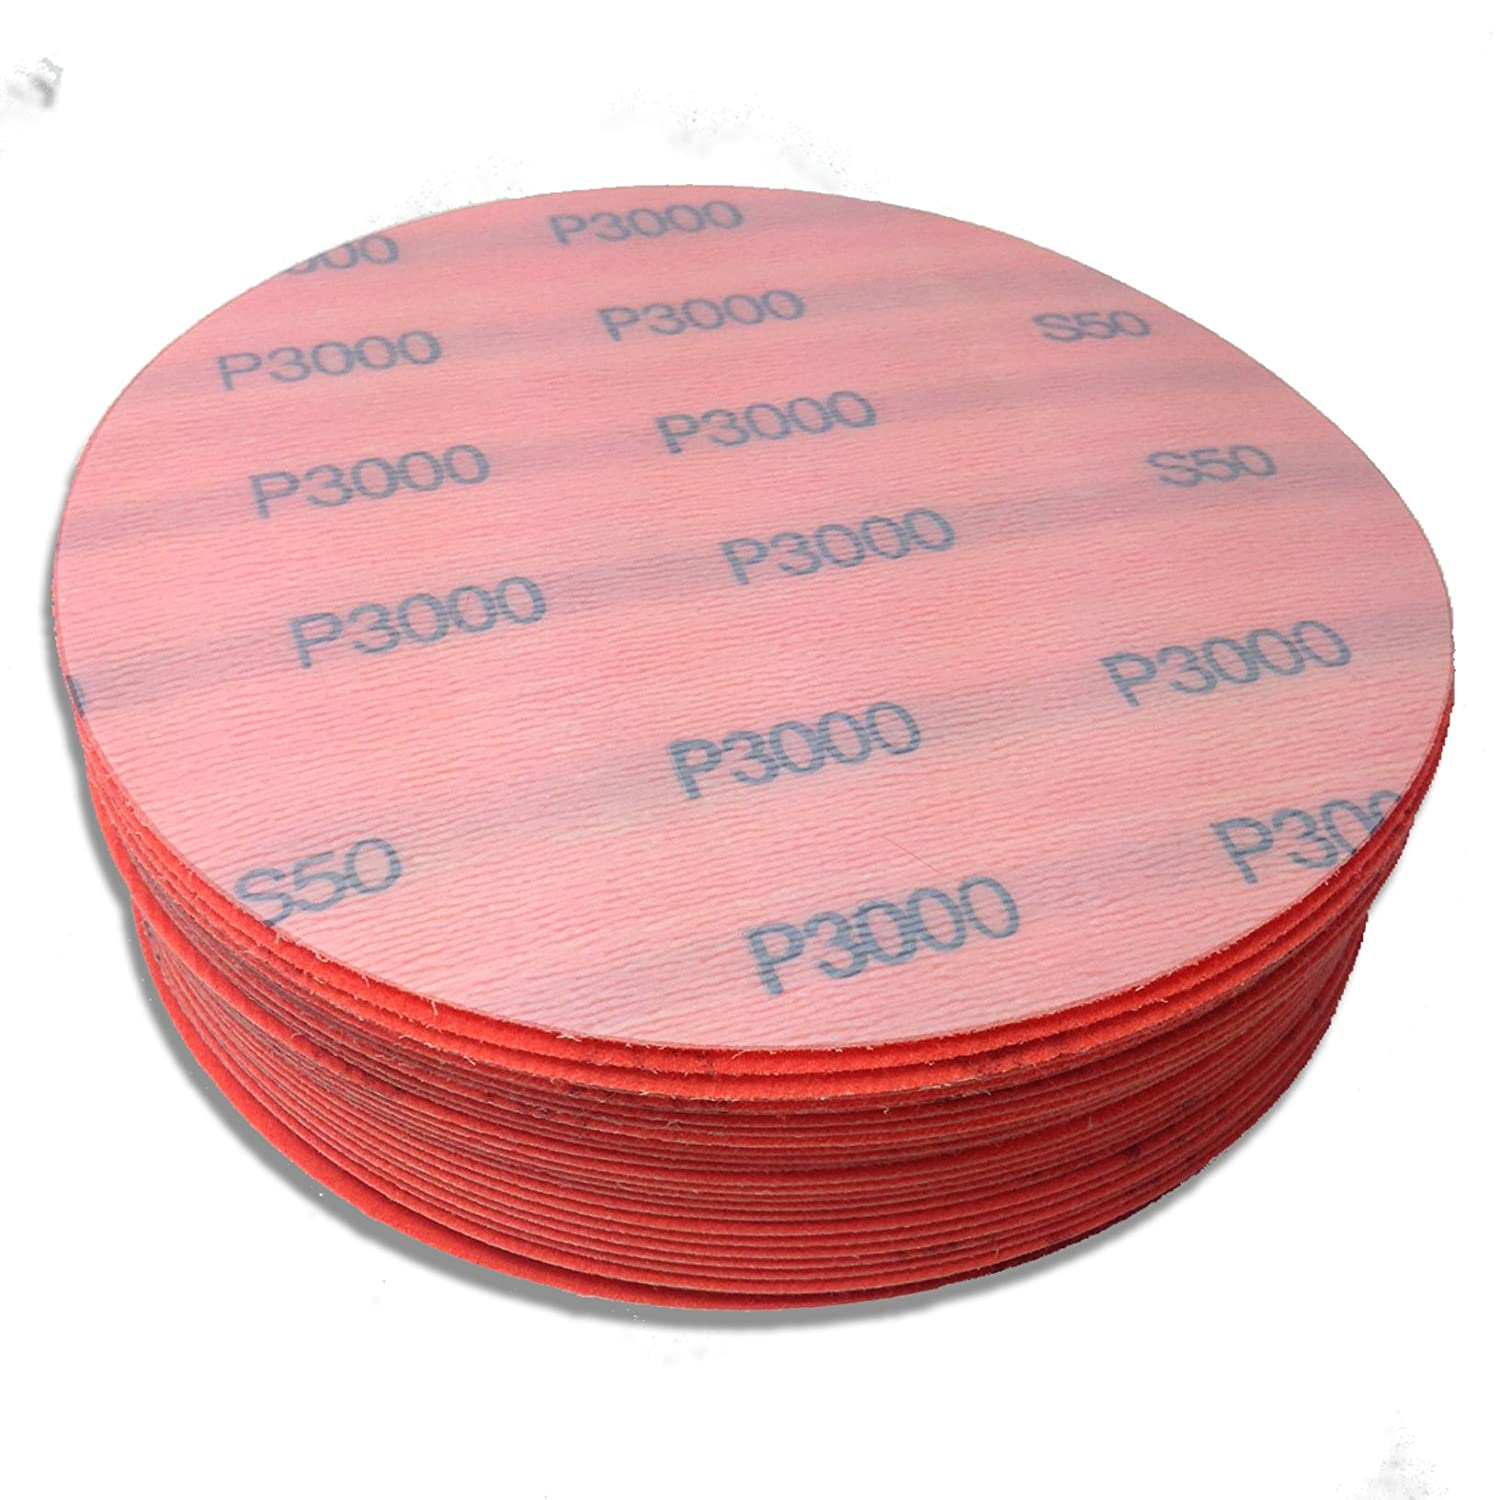 6 Inch 3000 Grit High Performance Hook and Loop Wet//Dry Auto Body Film Sanding Discs 50 Pack